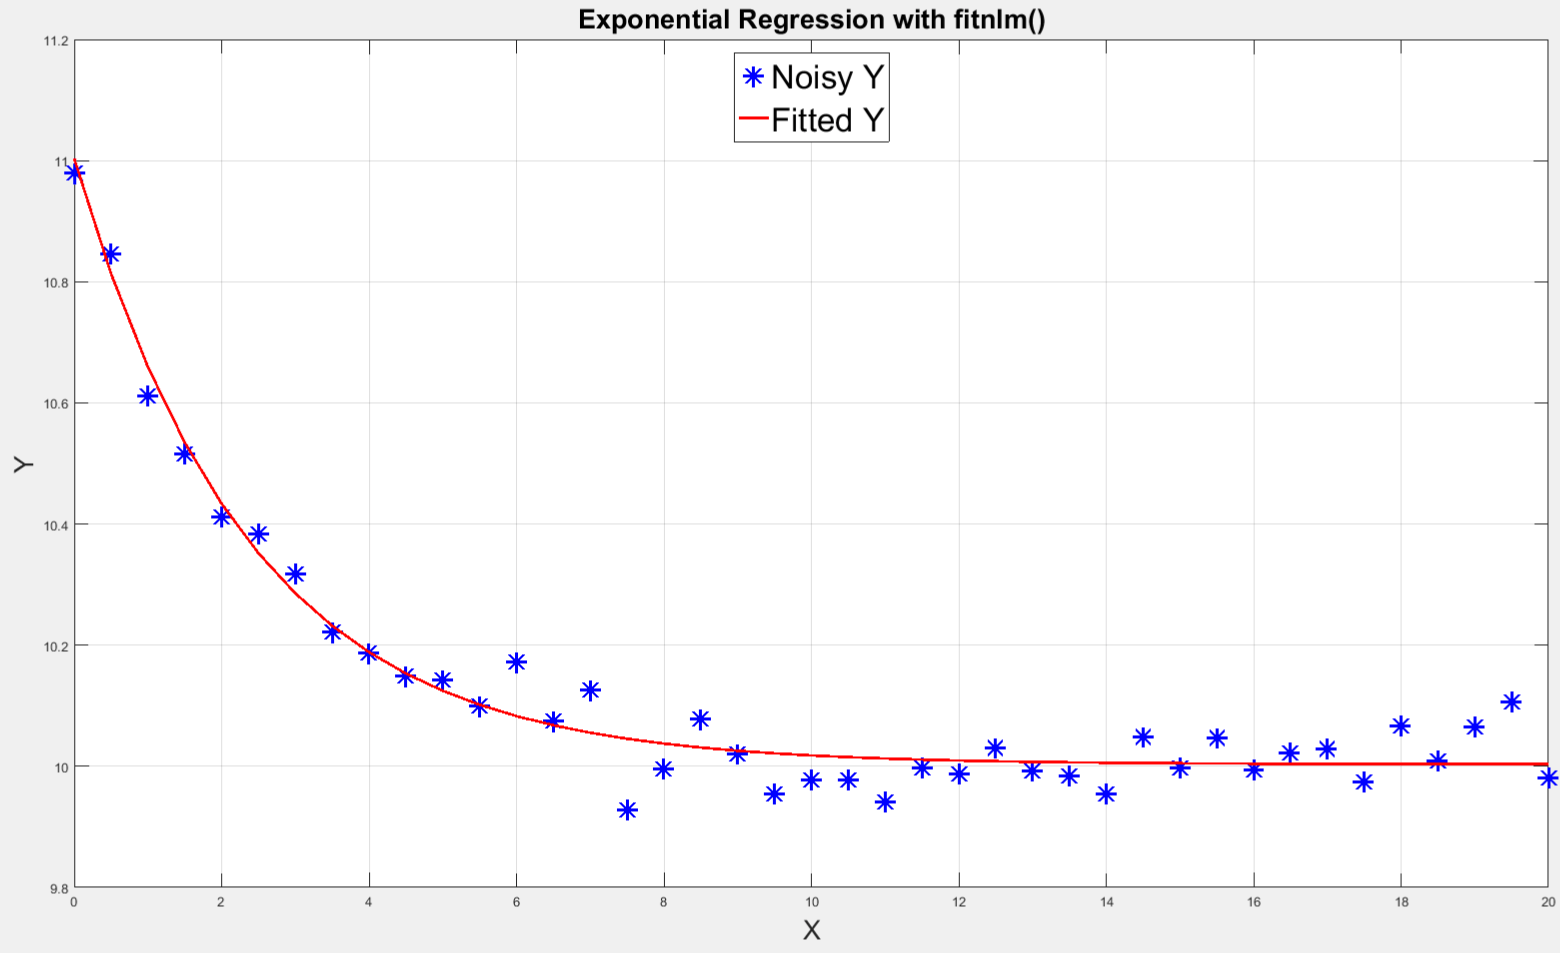 Exponential growth/decay point detection in a time series